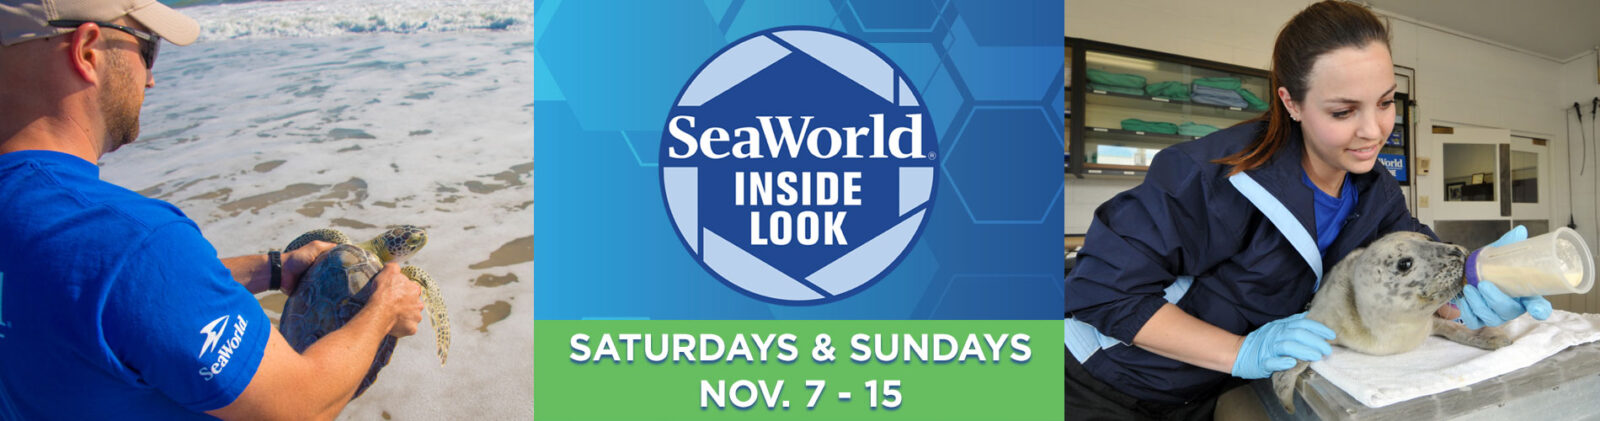 SeaWorld Inside Look Weekends November 2020